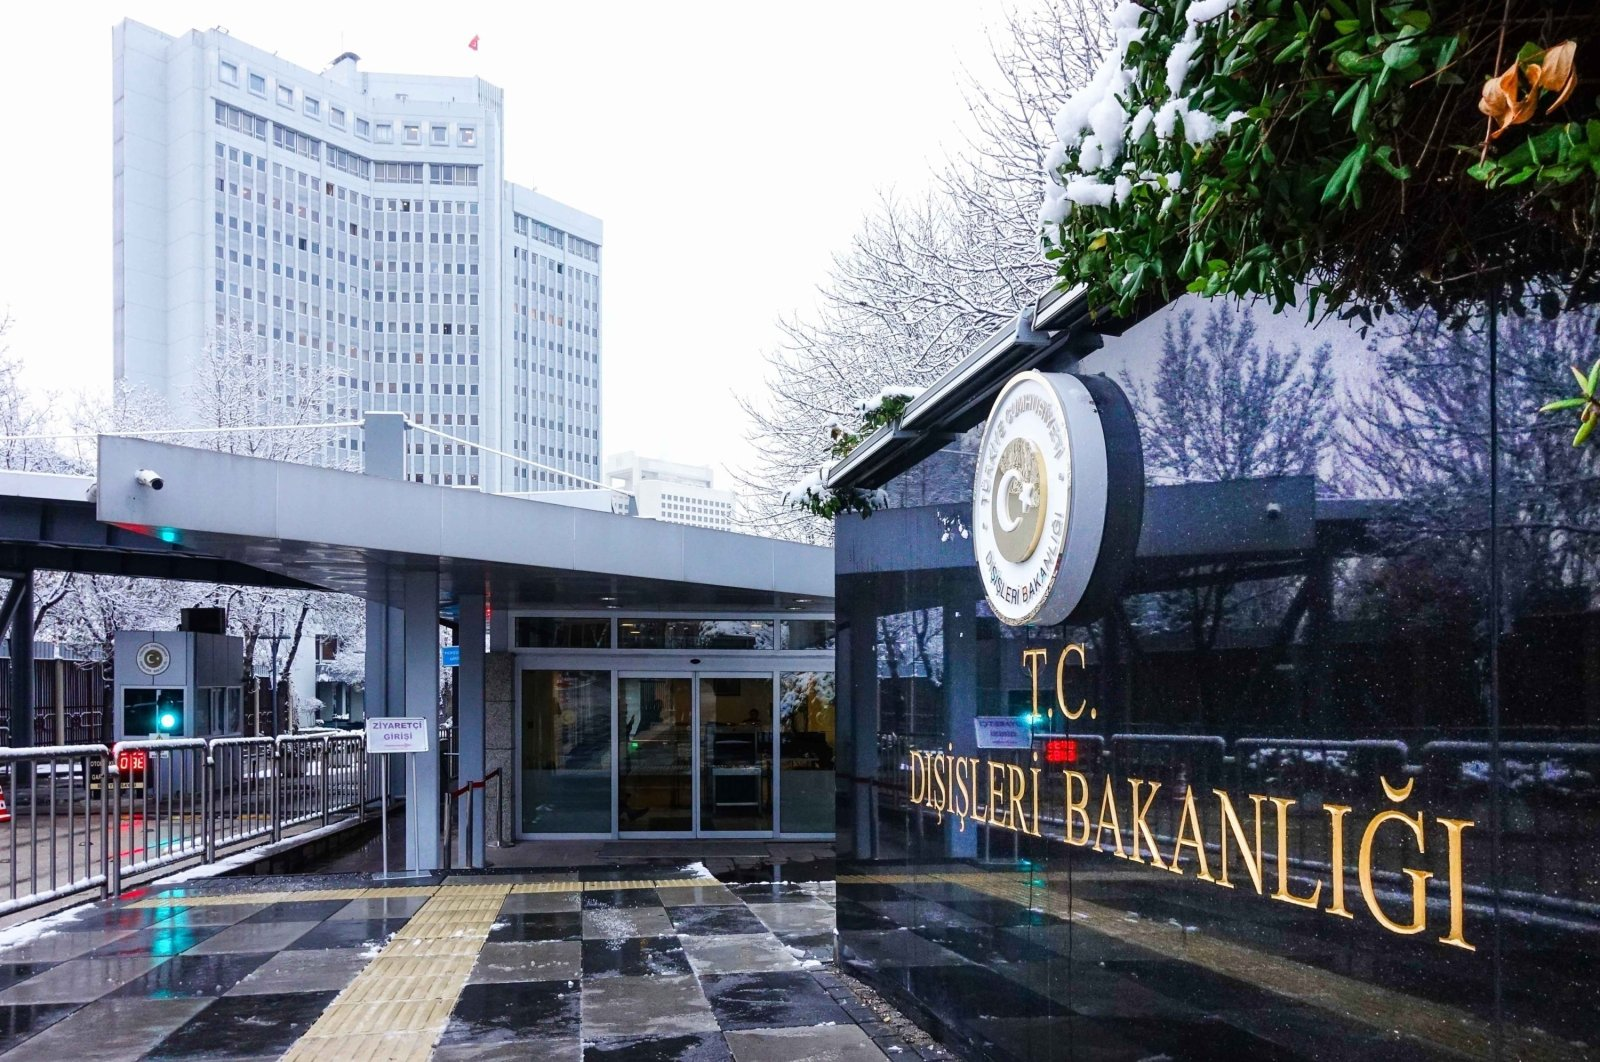 Ministry of Foreign Affairs headquarters in Turkey's capital Ankara in this undated file photo. (AA Photo)